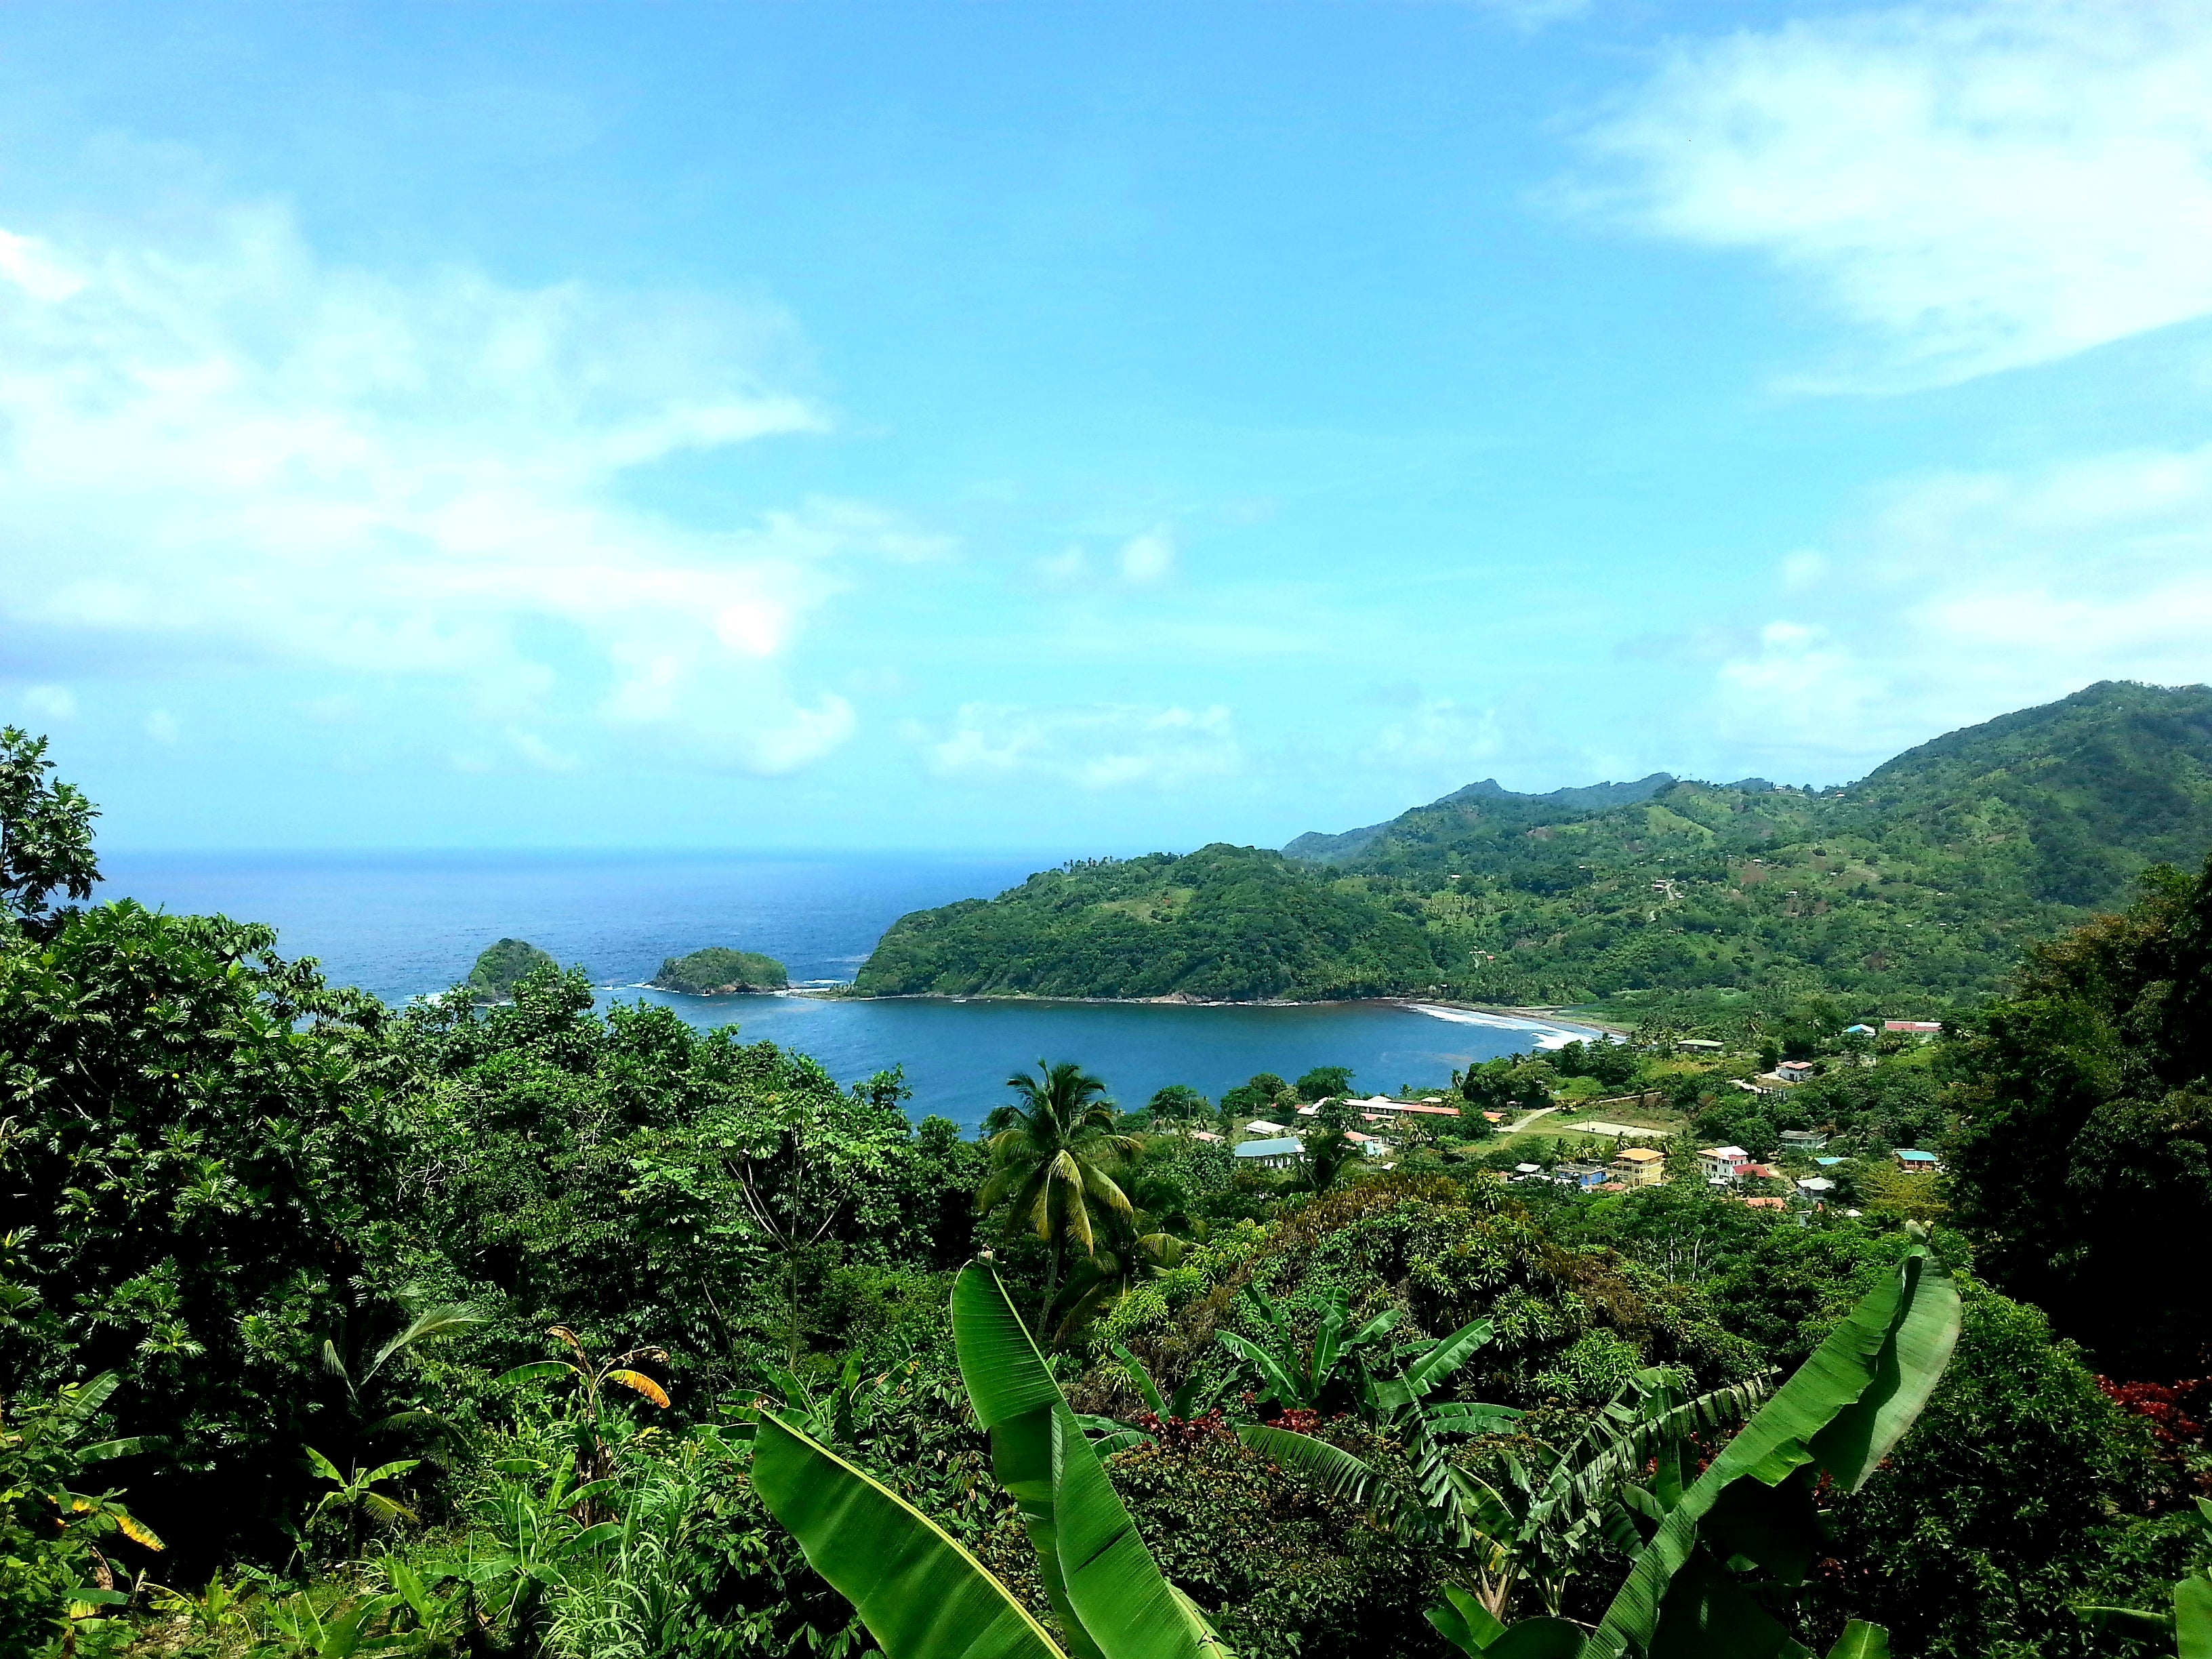 Australian Cricket Tours - Lush Dominica As Seen From Isle View Restaurant And Bar Where We Always Stop For Lunch After Arriving At Melville Hall International Airport